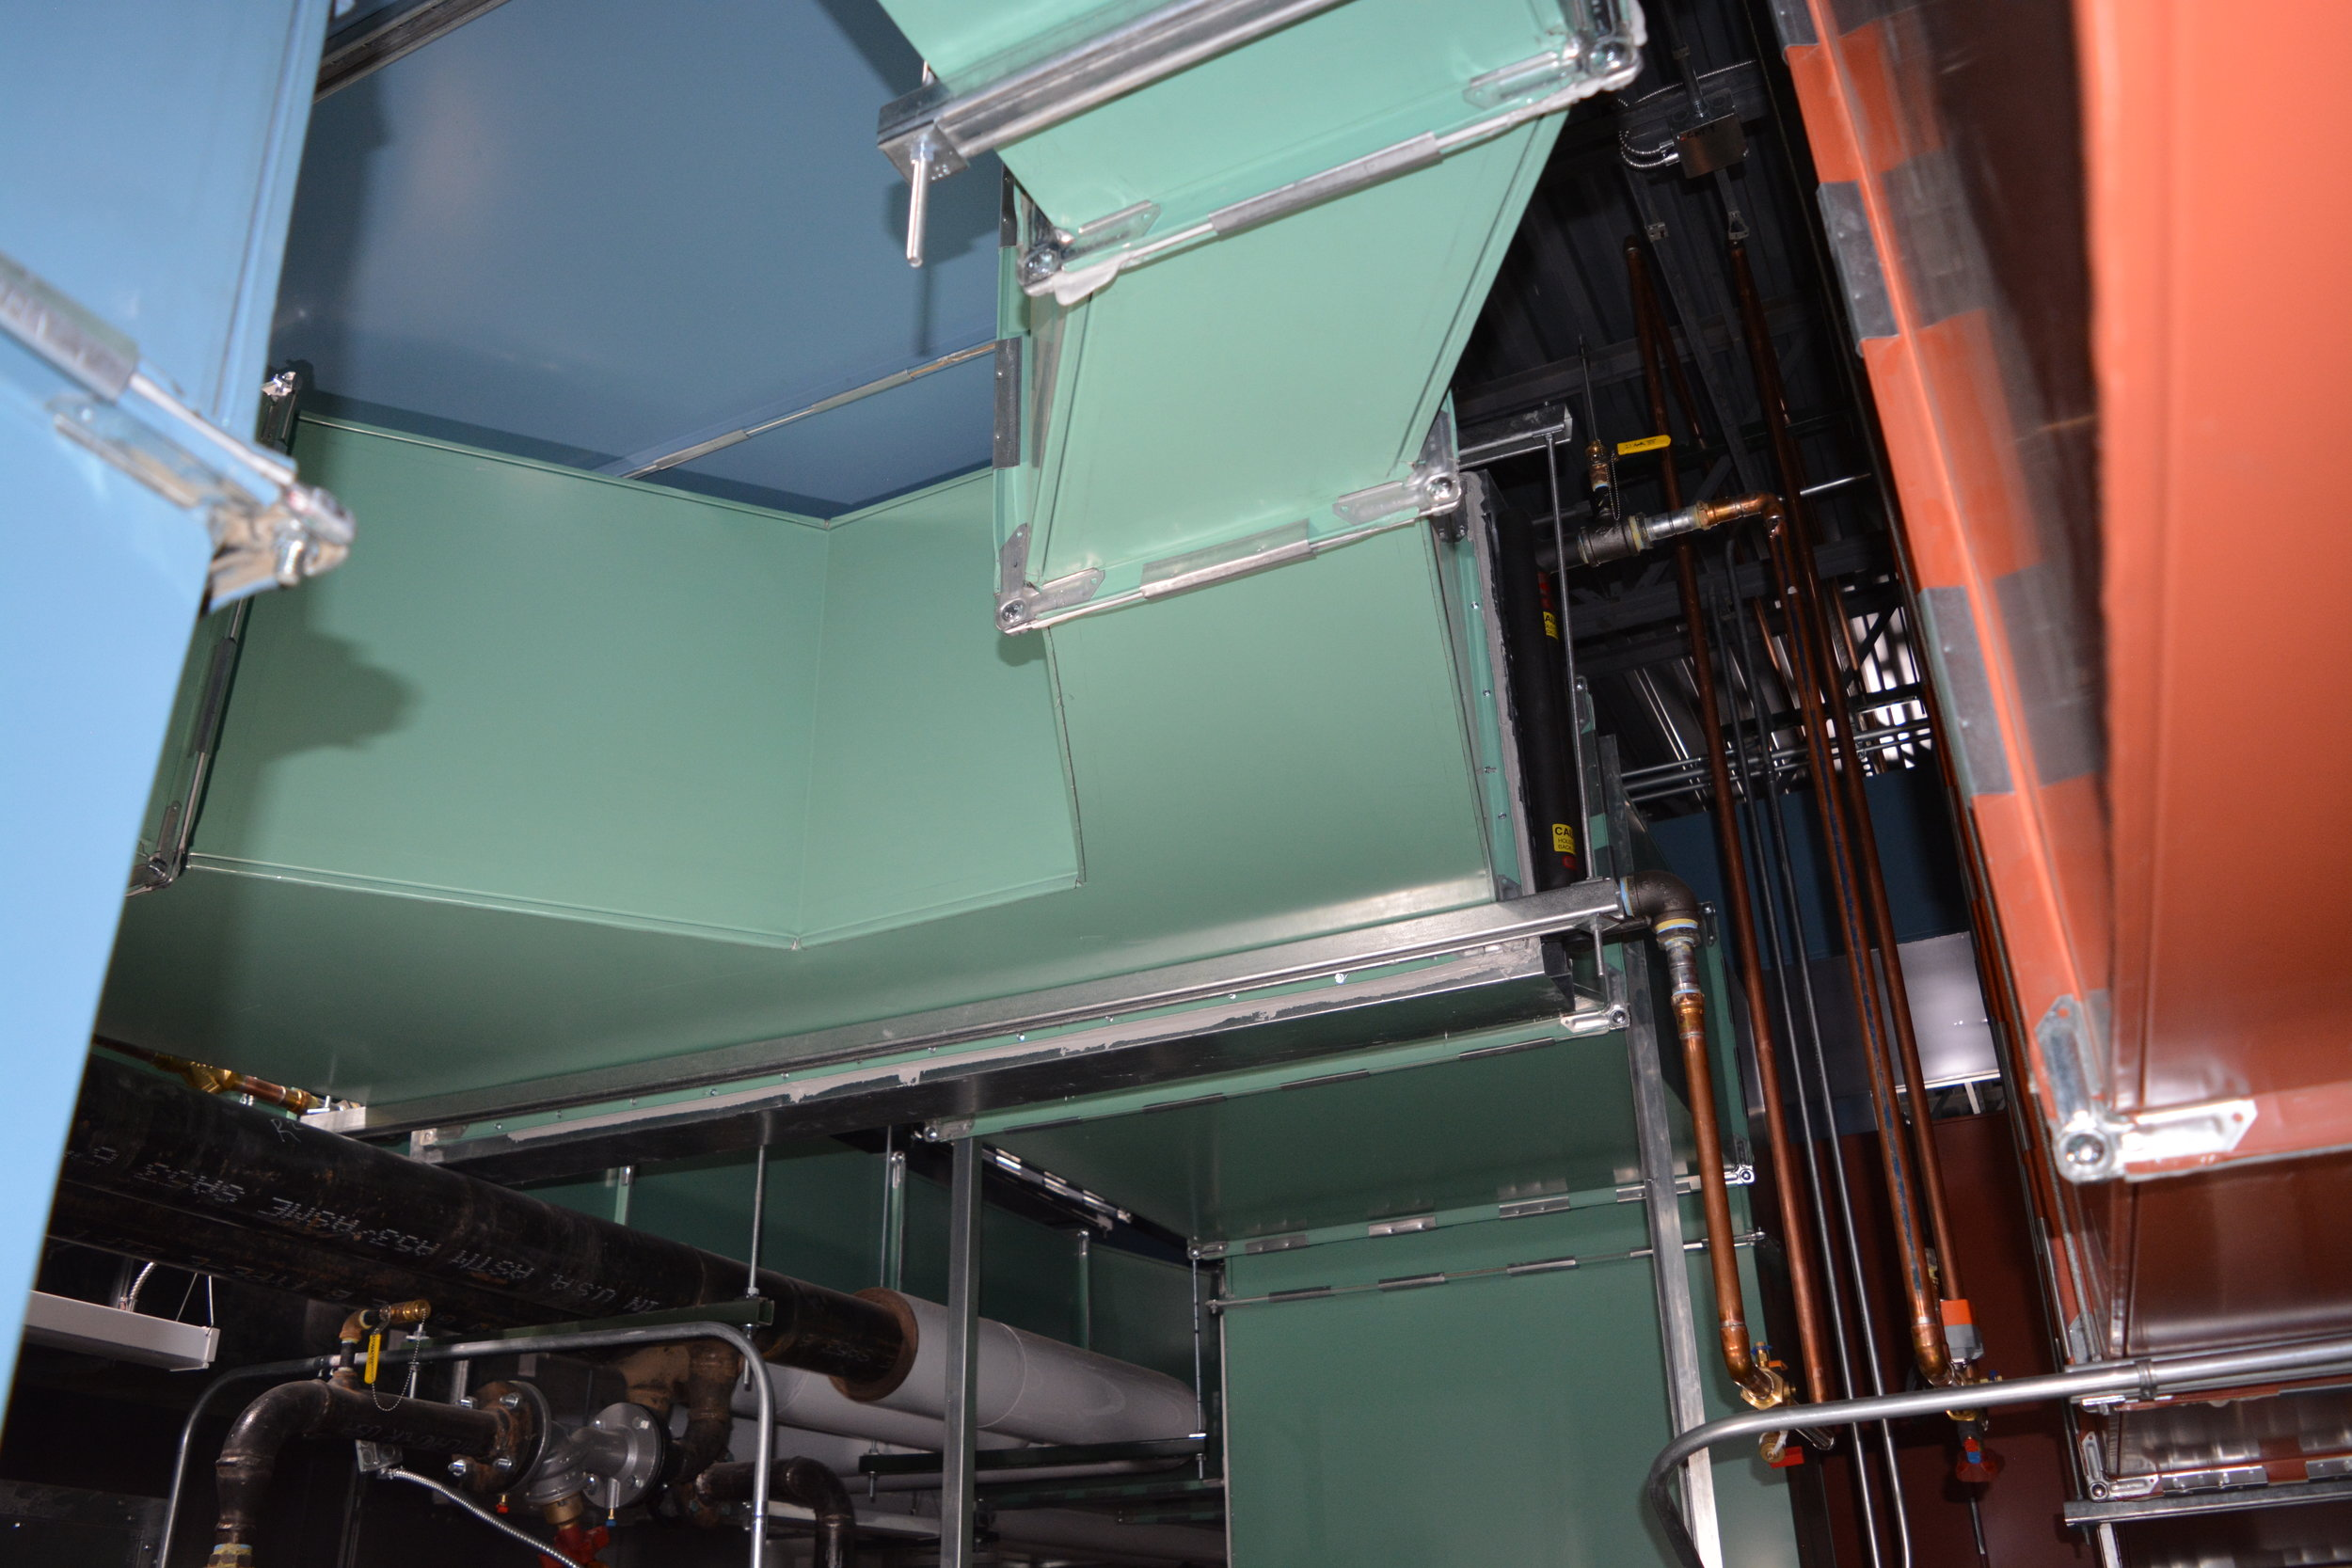 With the use of Color in the Mechanical Room, it makes for a clean understanding of the system.